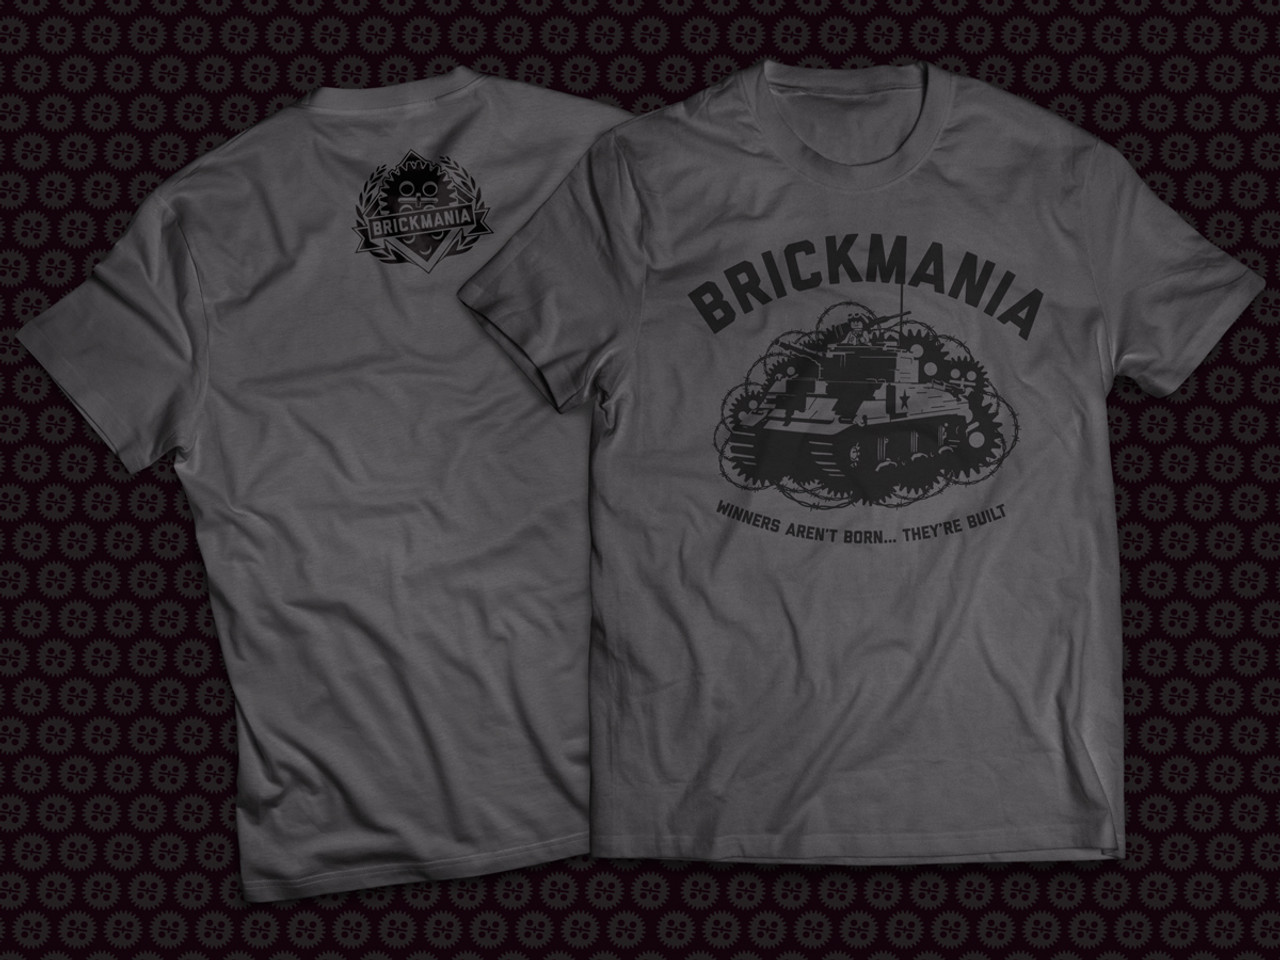 Brickmania 2018 T-Shirt